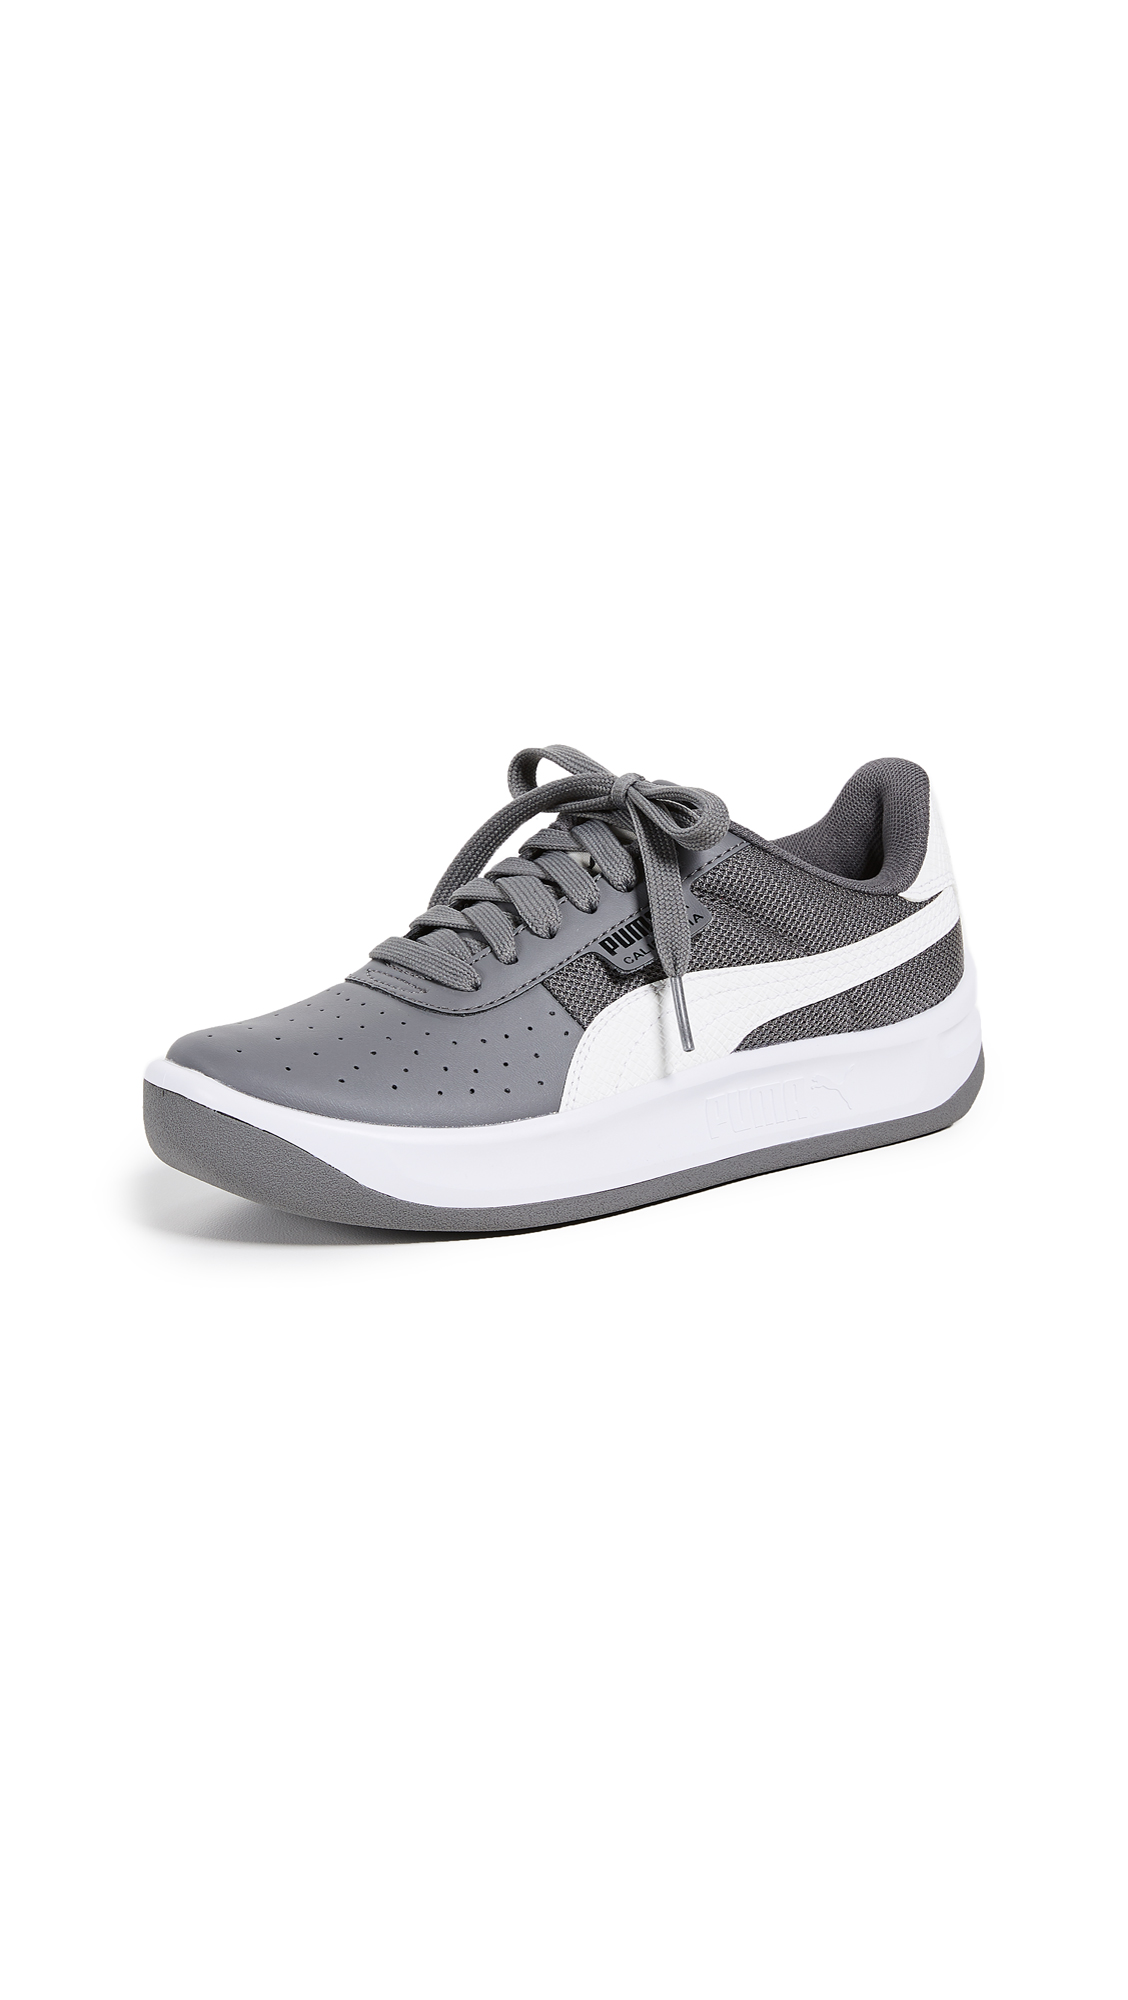 PUMA California Scratch Sneakers - Smoked Pearl/White/Black